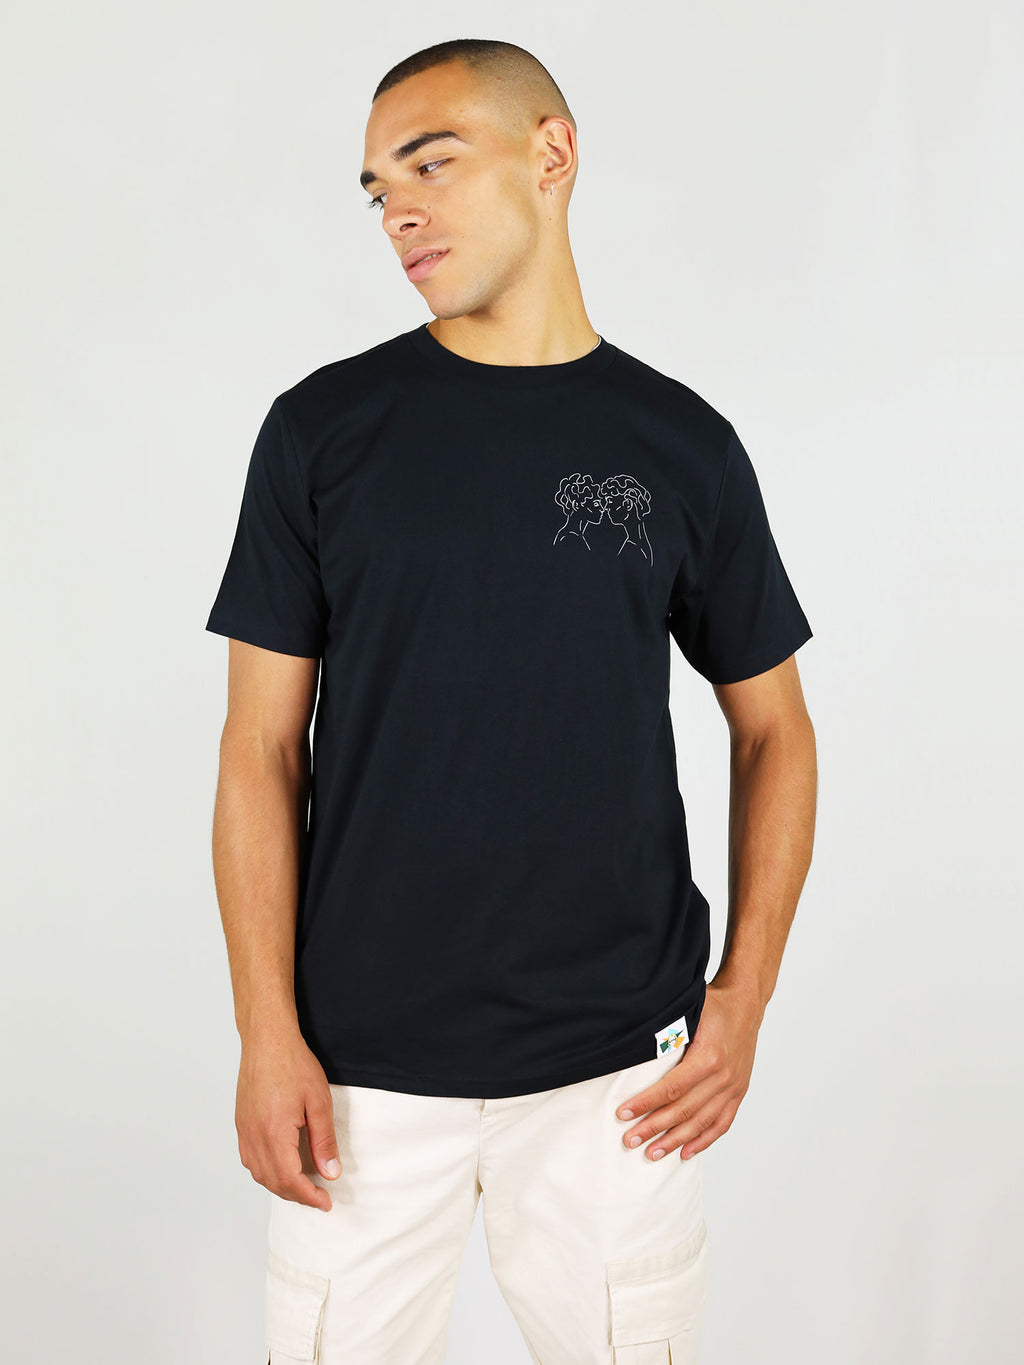 Lover's eyes is a 100% GOTS-certified organic cotton t-shirt in black